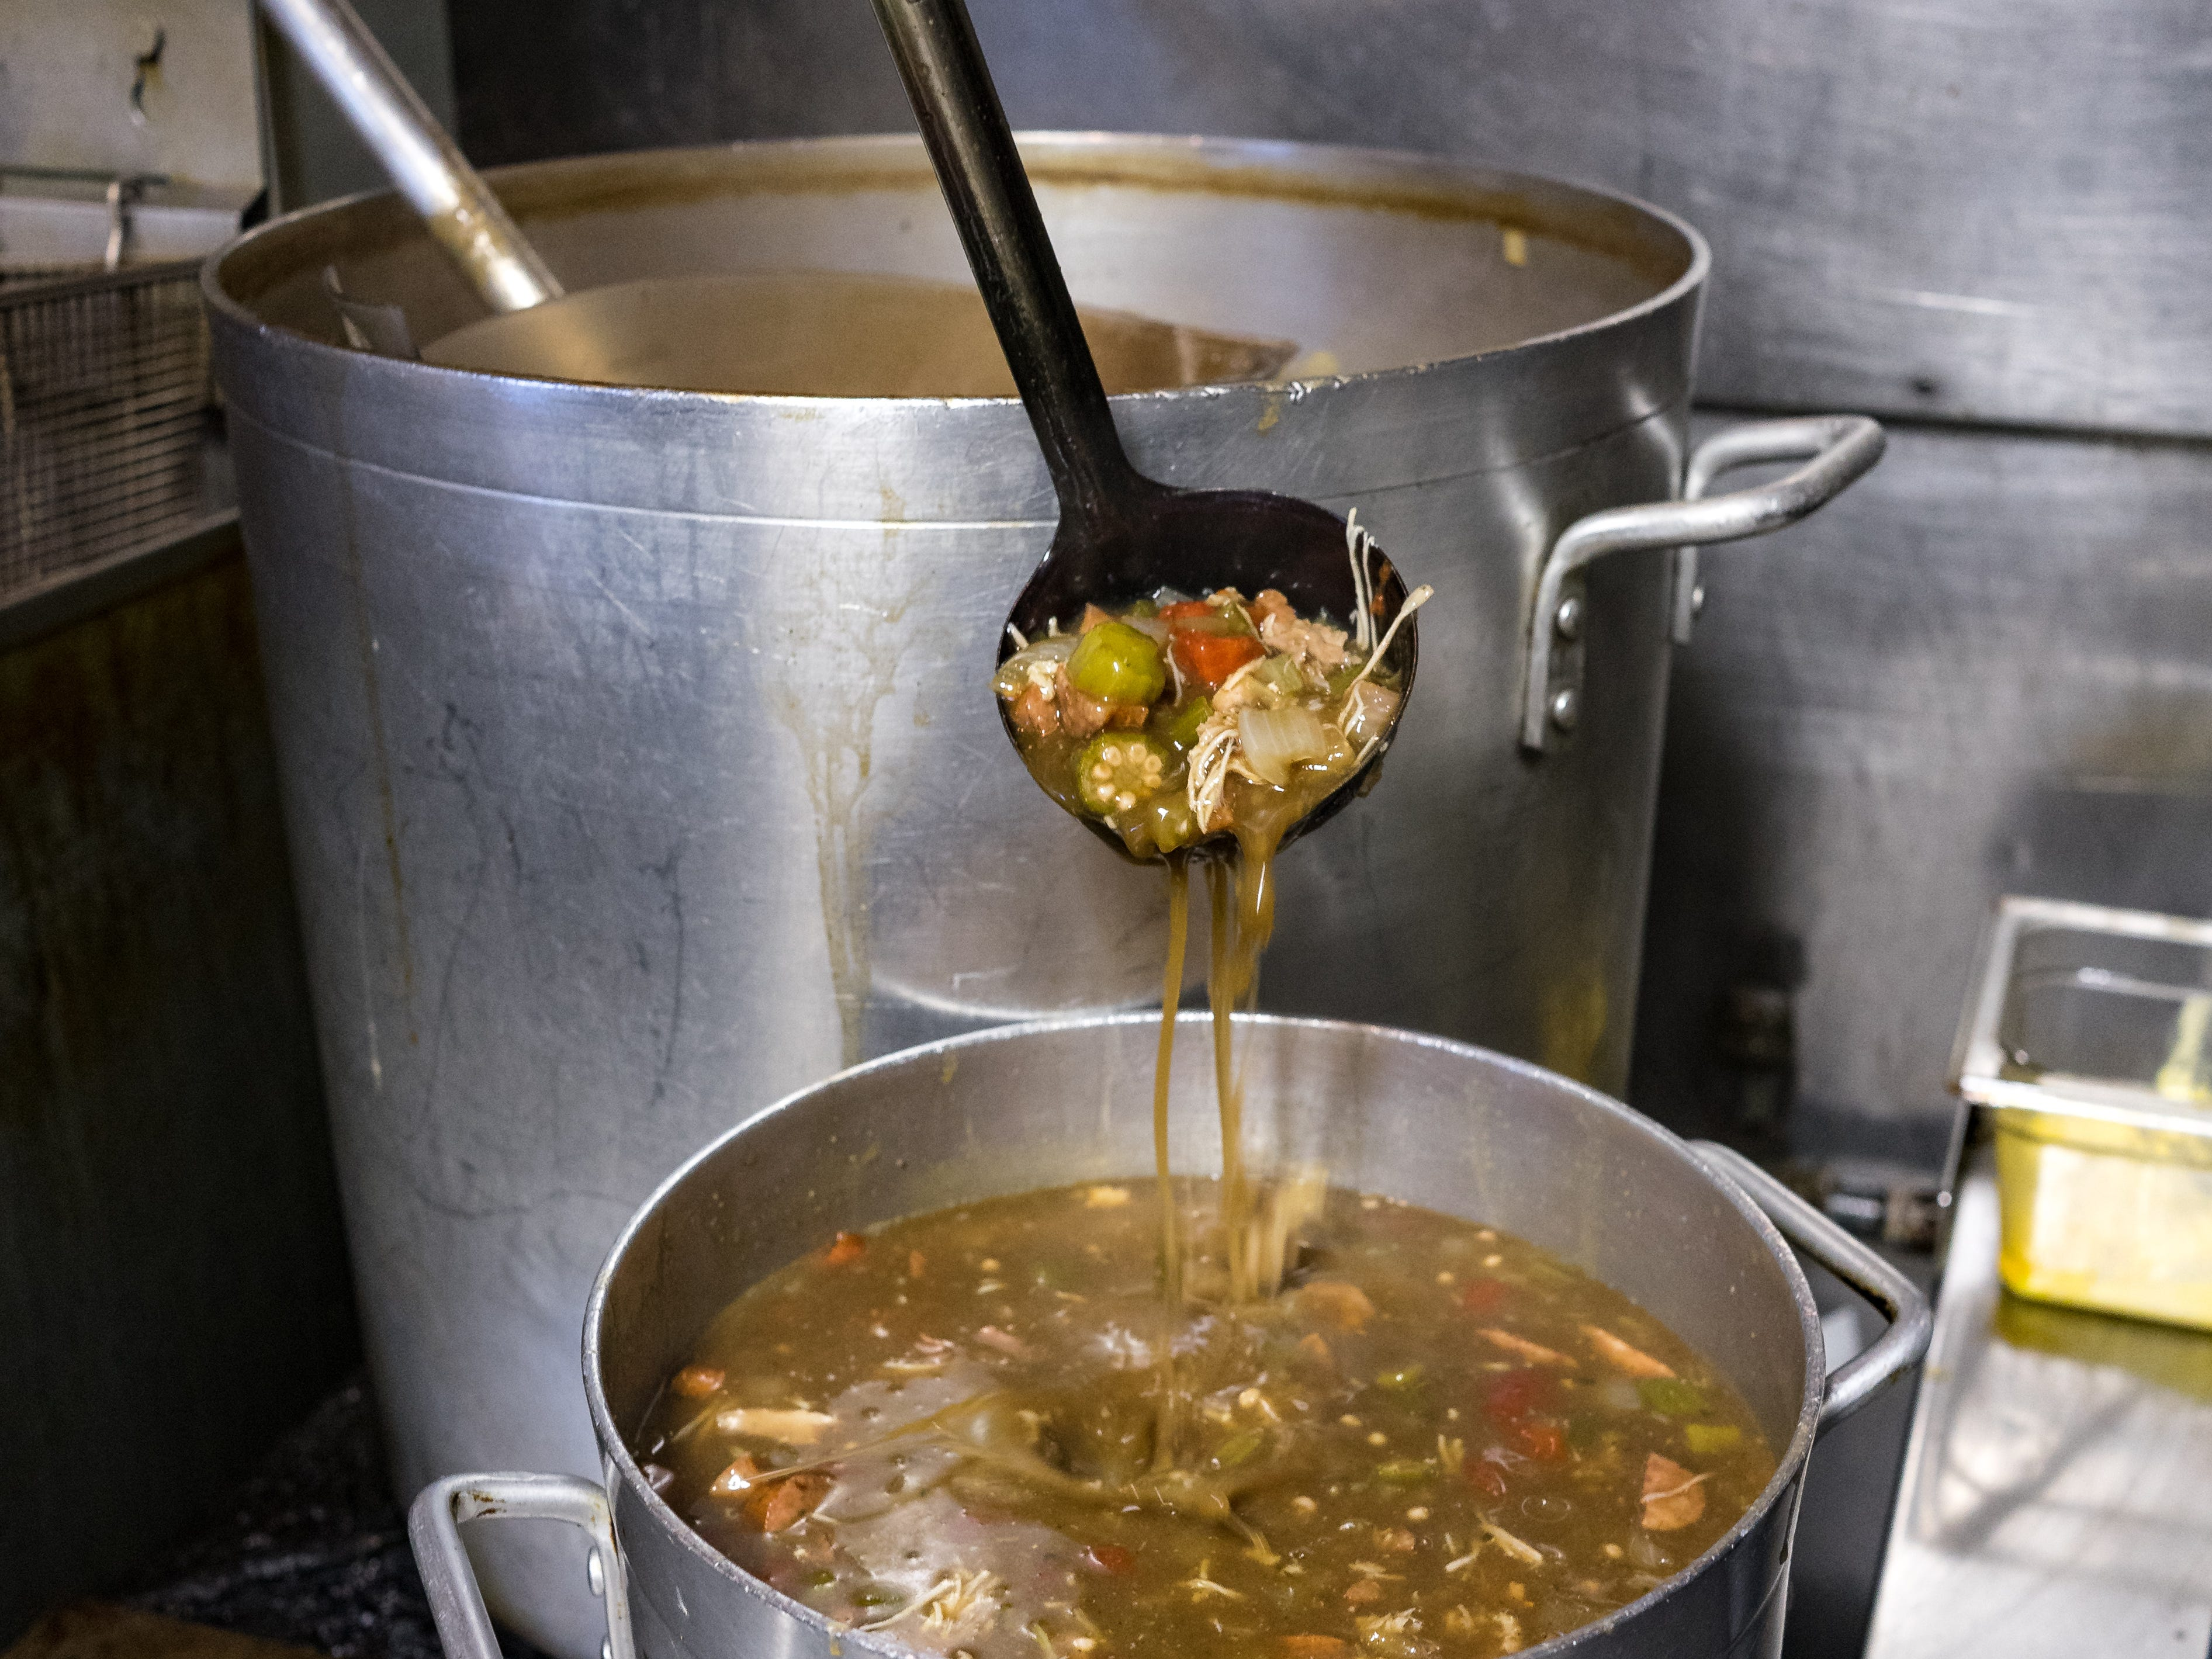 Green Acres Convenient Store, located at 505 E. Johnson Ave., cooks up around 20 gallons of gumbo a day to serve to its customers.